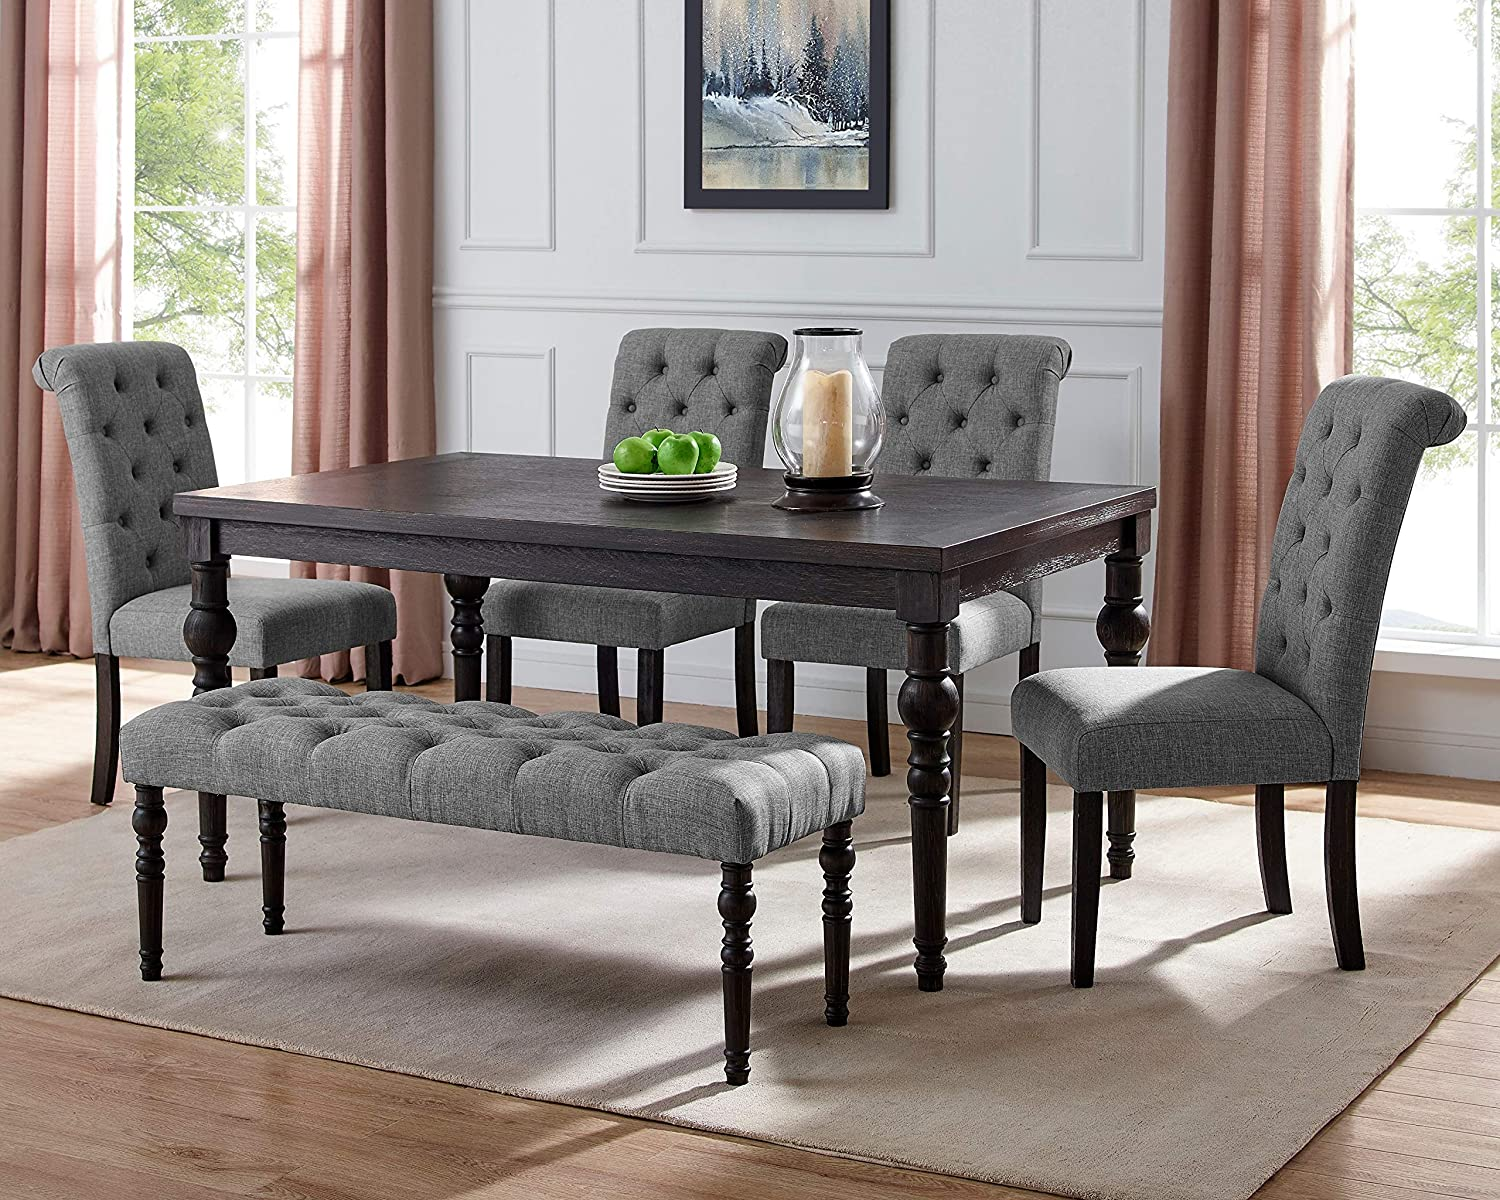 Roundhill Furniture Aneta Urban Style Dark Washed Wood Dining Set: Table, 4 Chairs and Bench, Gray